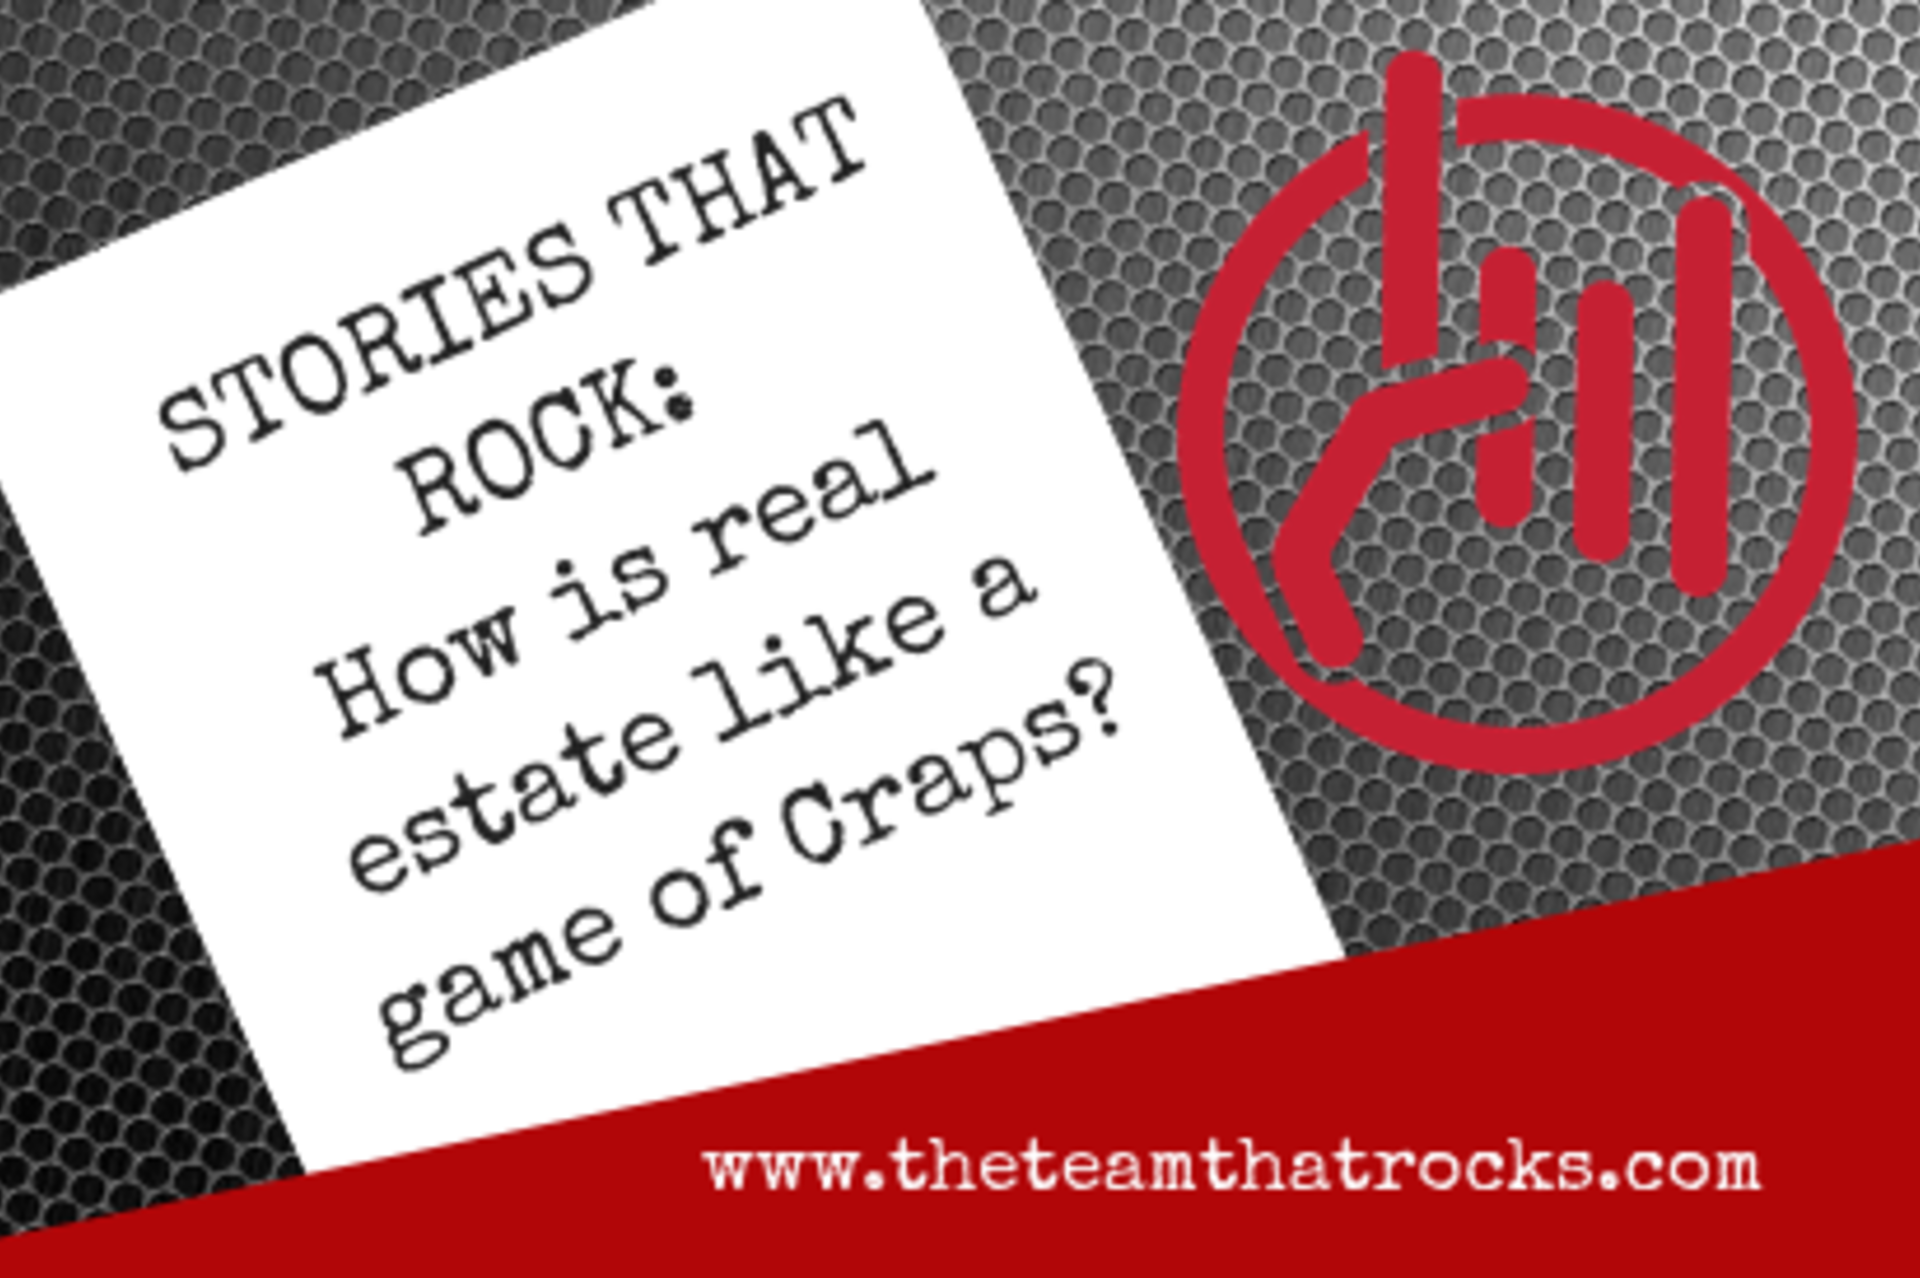 Stories that ROCK!: How is real estate like a game of Craps?